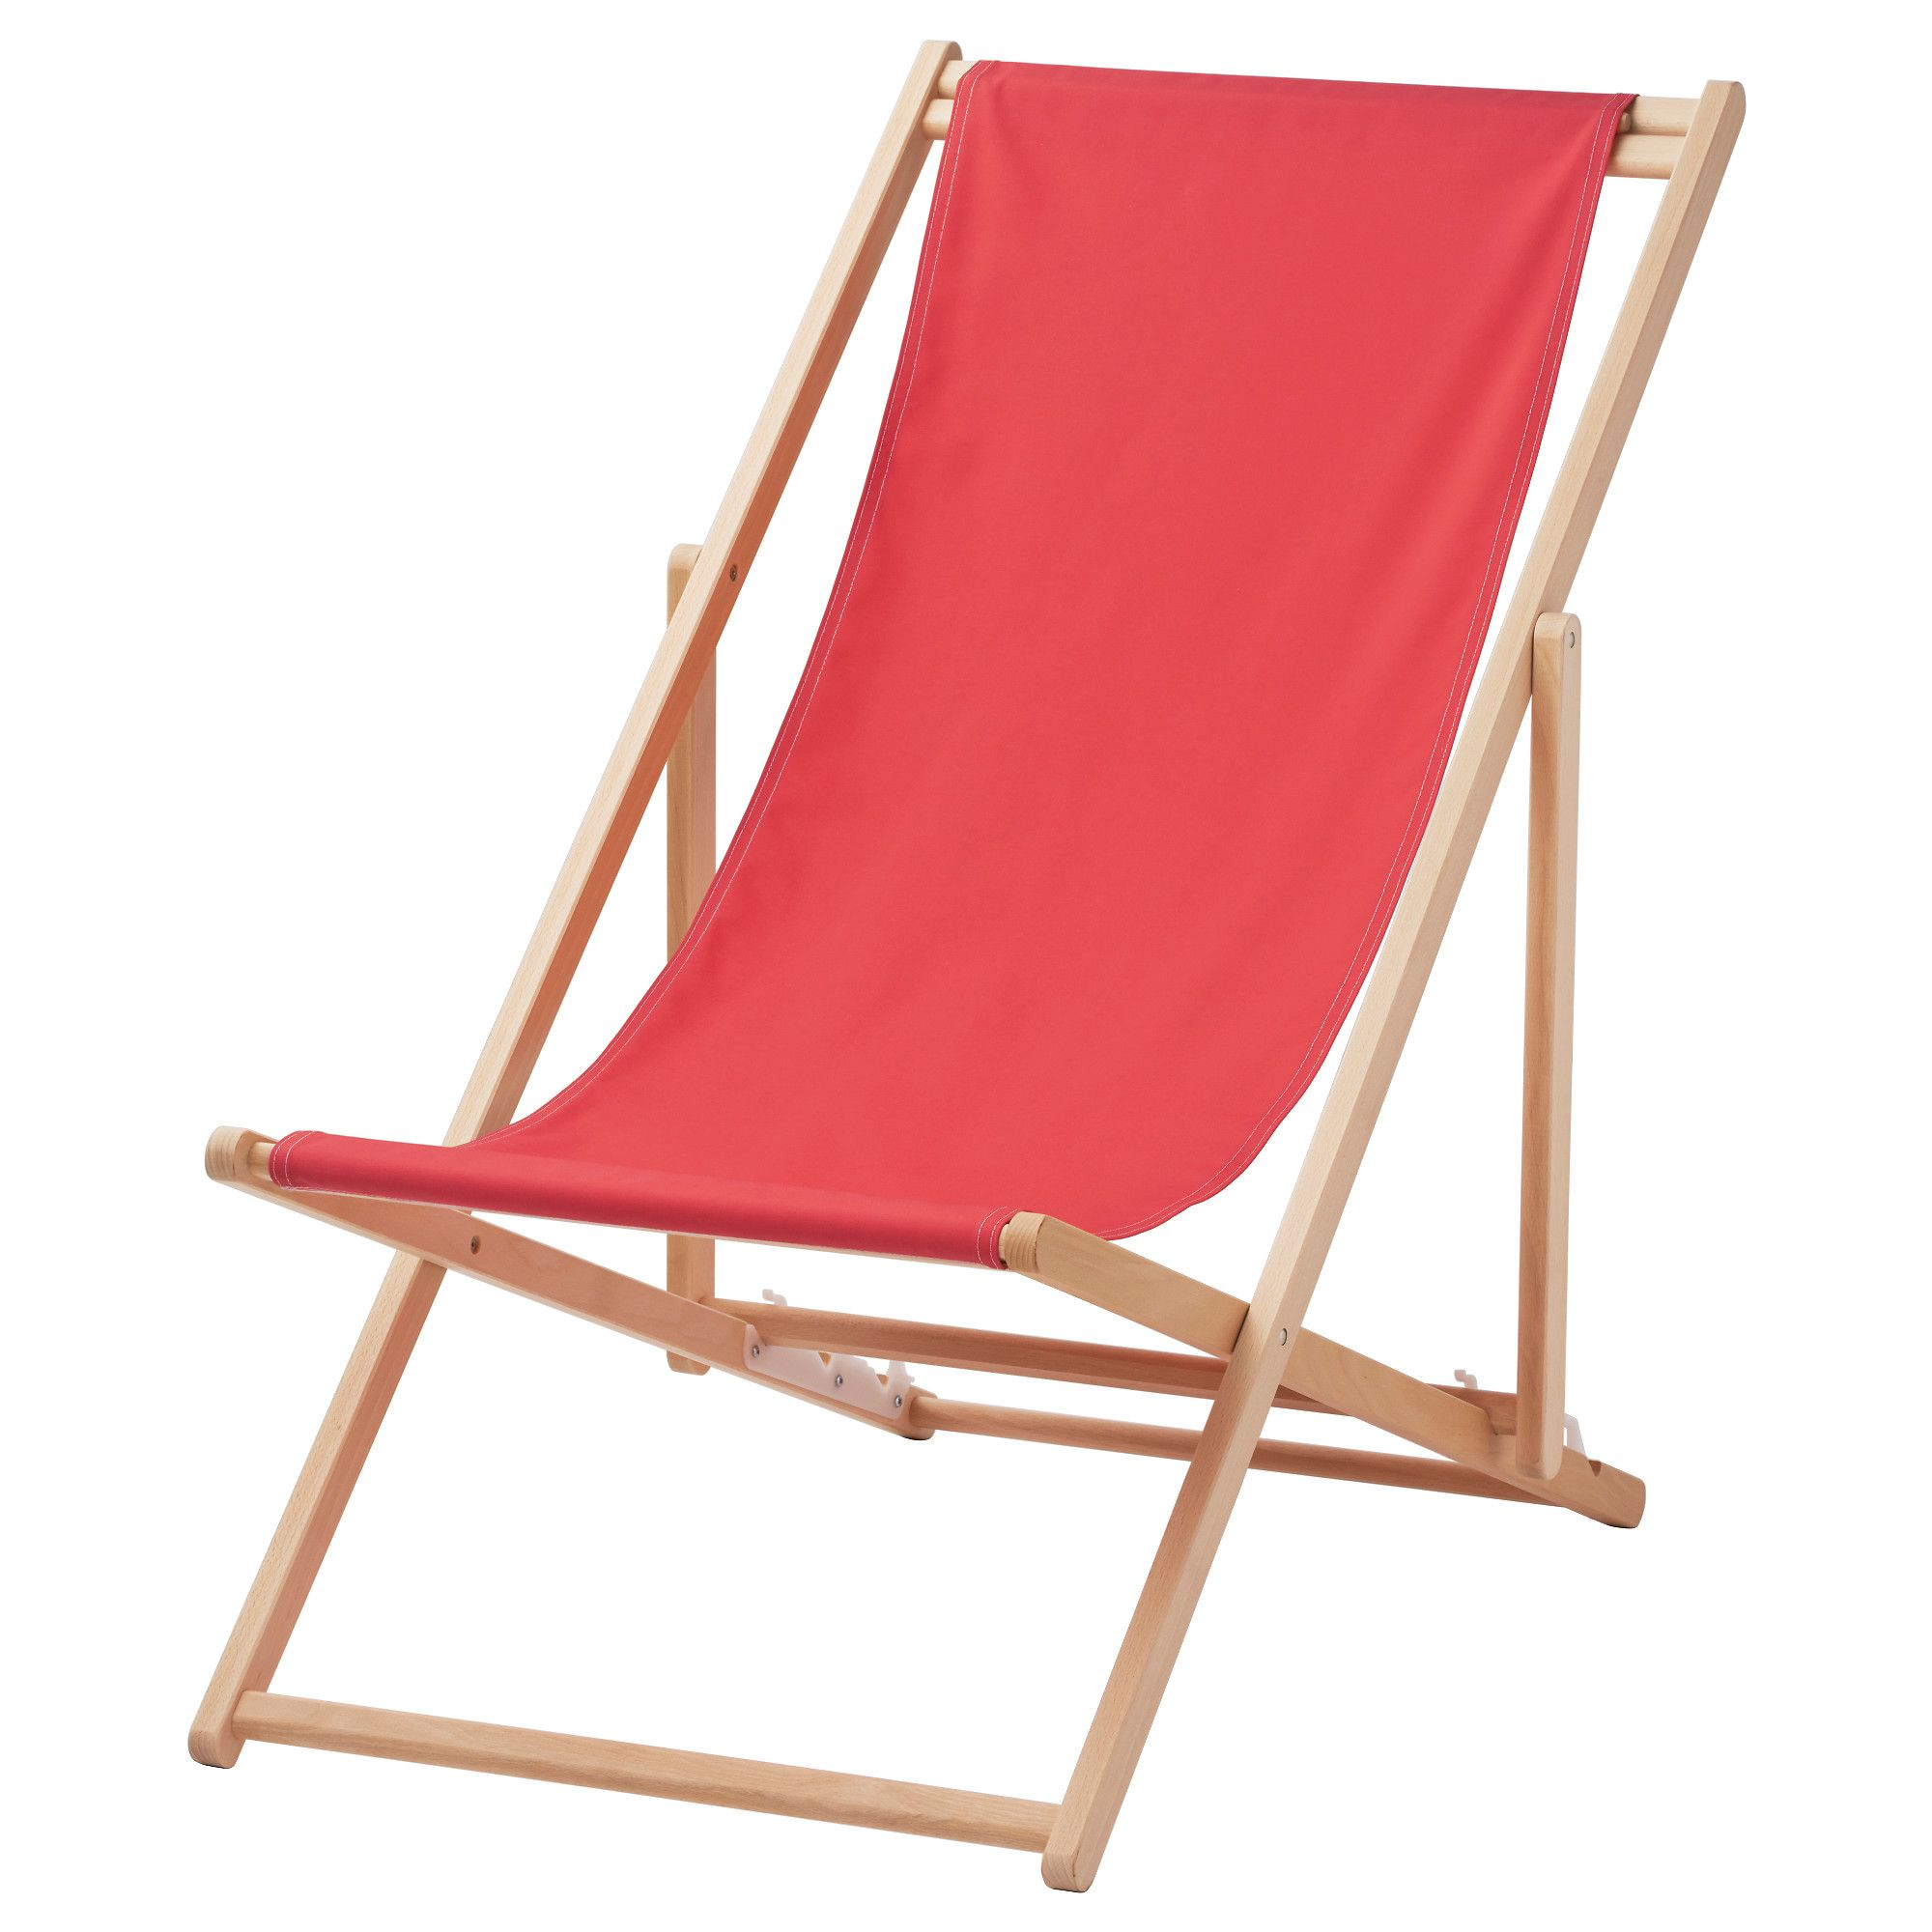 MYSINGS– Beach chair folding red IKEA